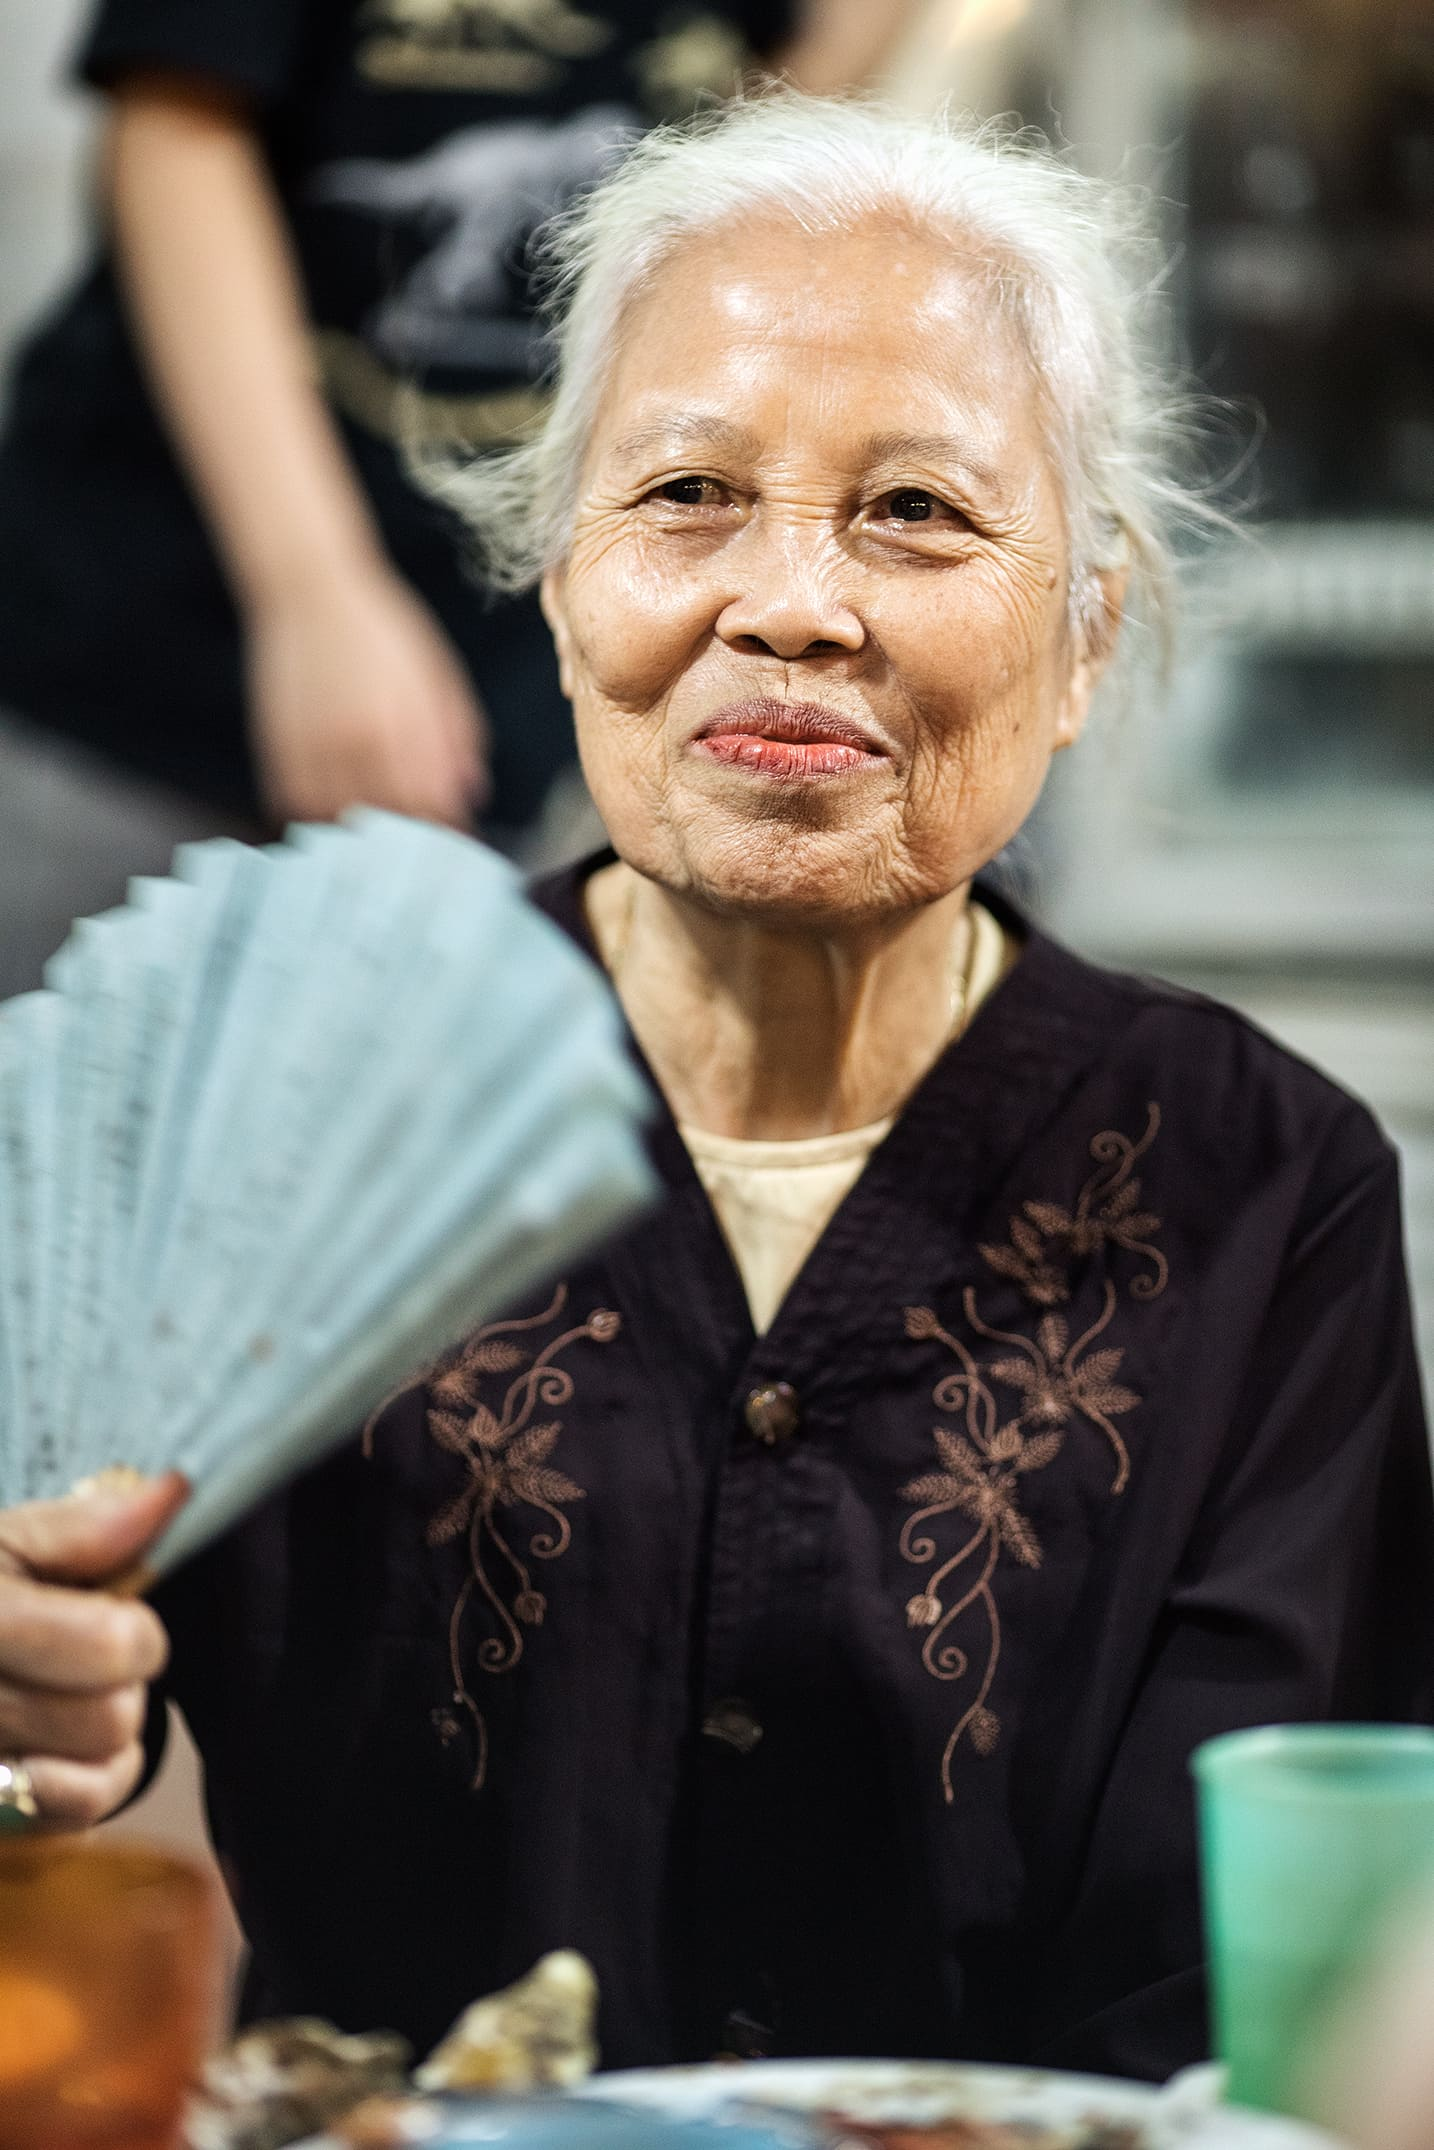 Old local woman eating Street food in Hanoi in the evening